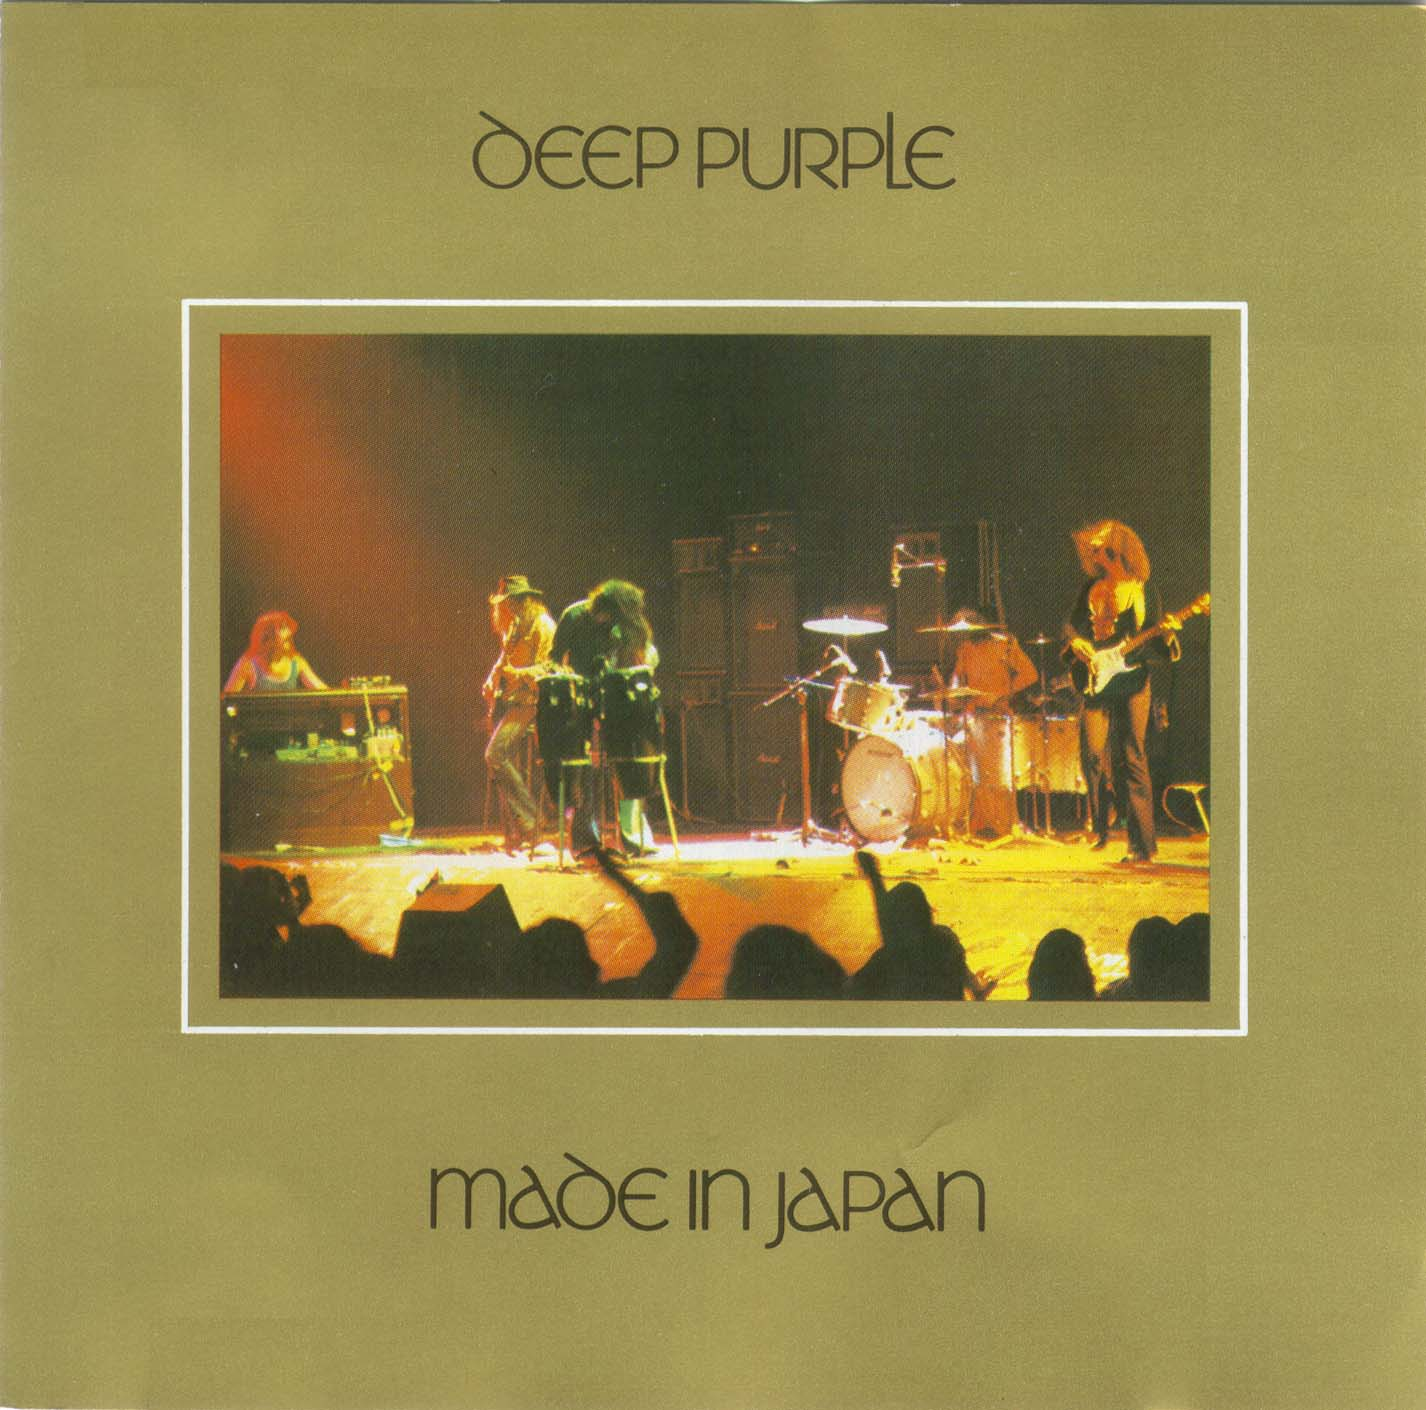 http://4.bp.blogspot.com/-qKGT3IJXnSU/T0OUbDF4_qI/AAAAAAAACq8/aqFKKjylnZ4/s1600/Deep_Purple-Made_In_Japan-Frontal.jpg